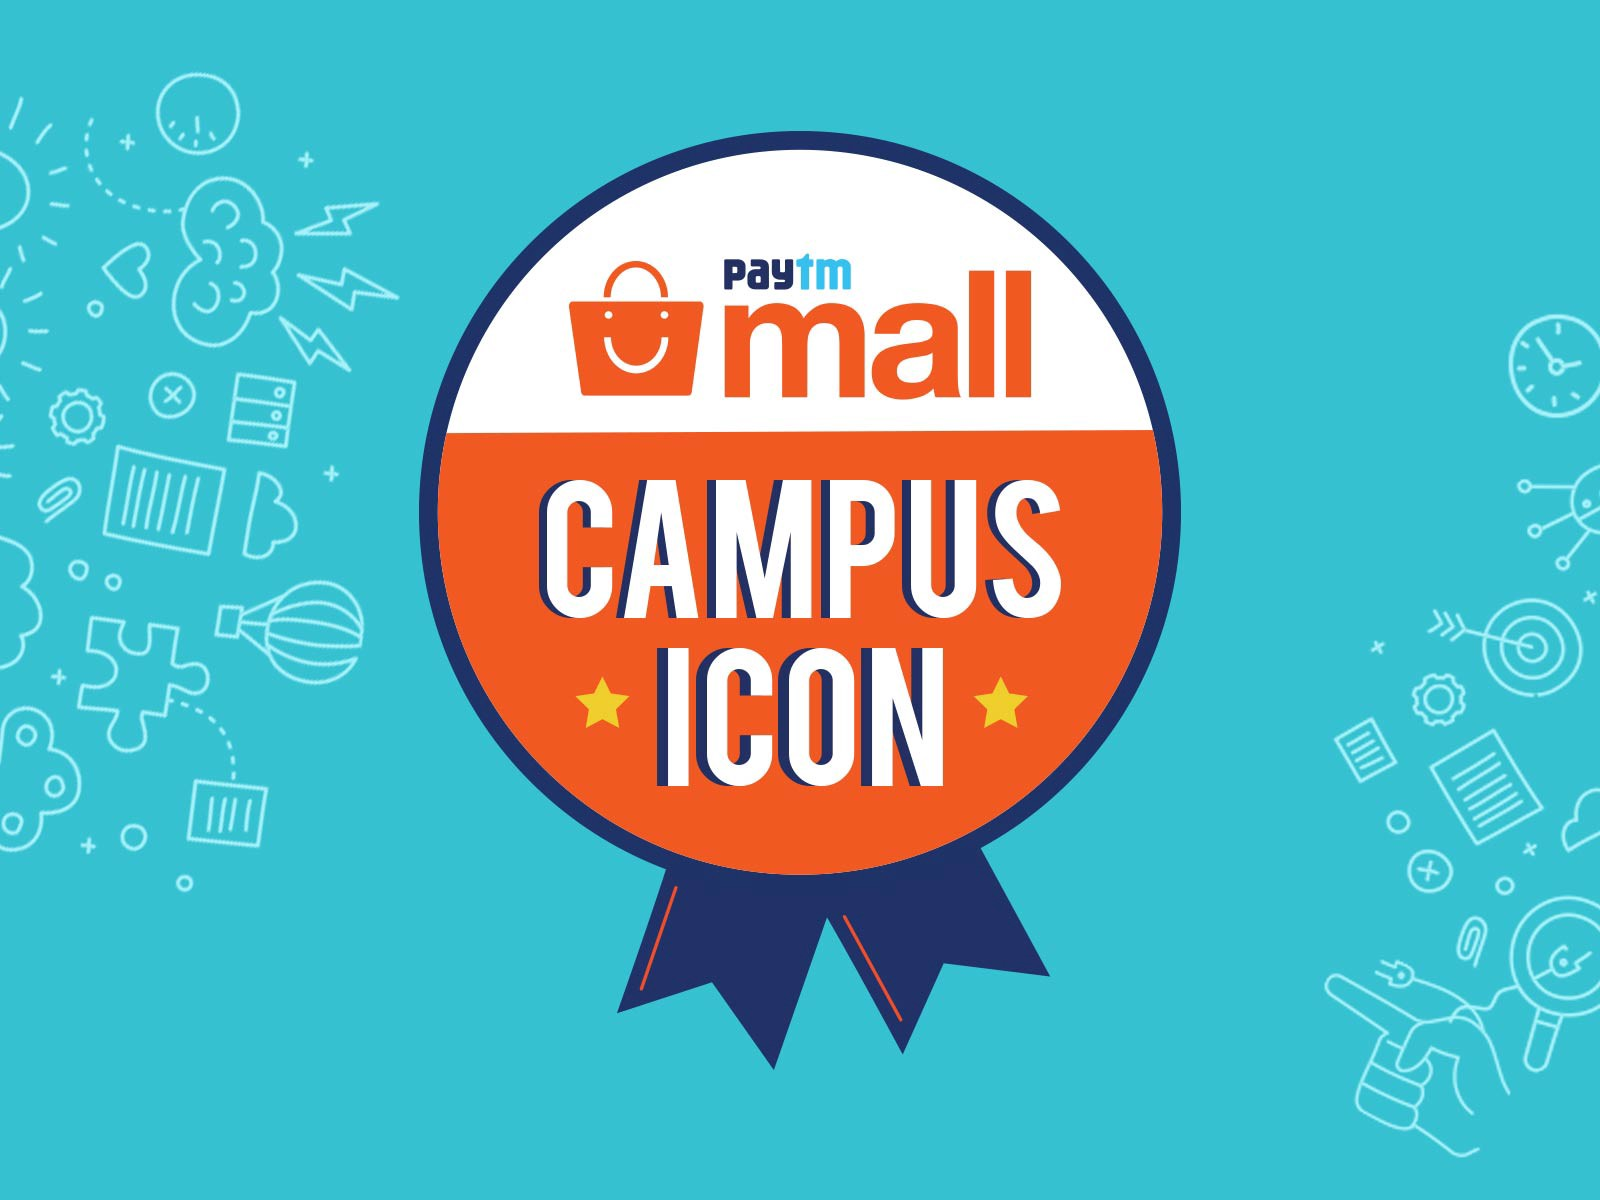 Paytm Mall Campus Icon program is here to make your college